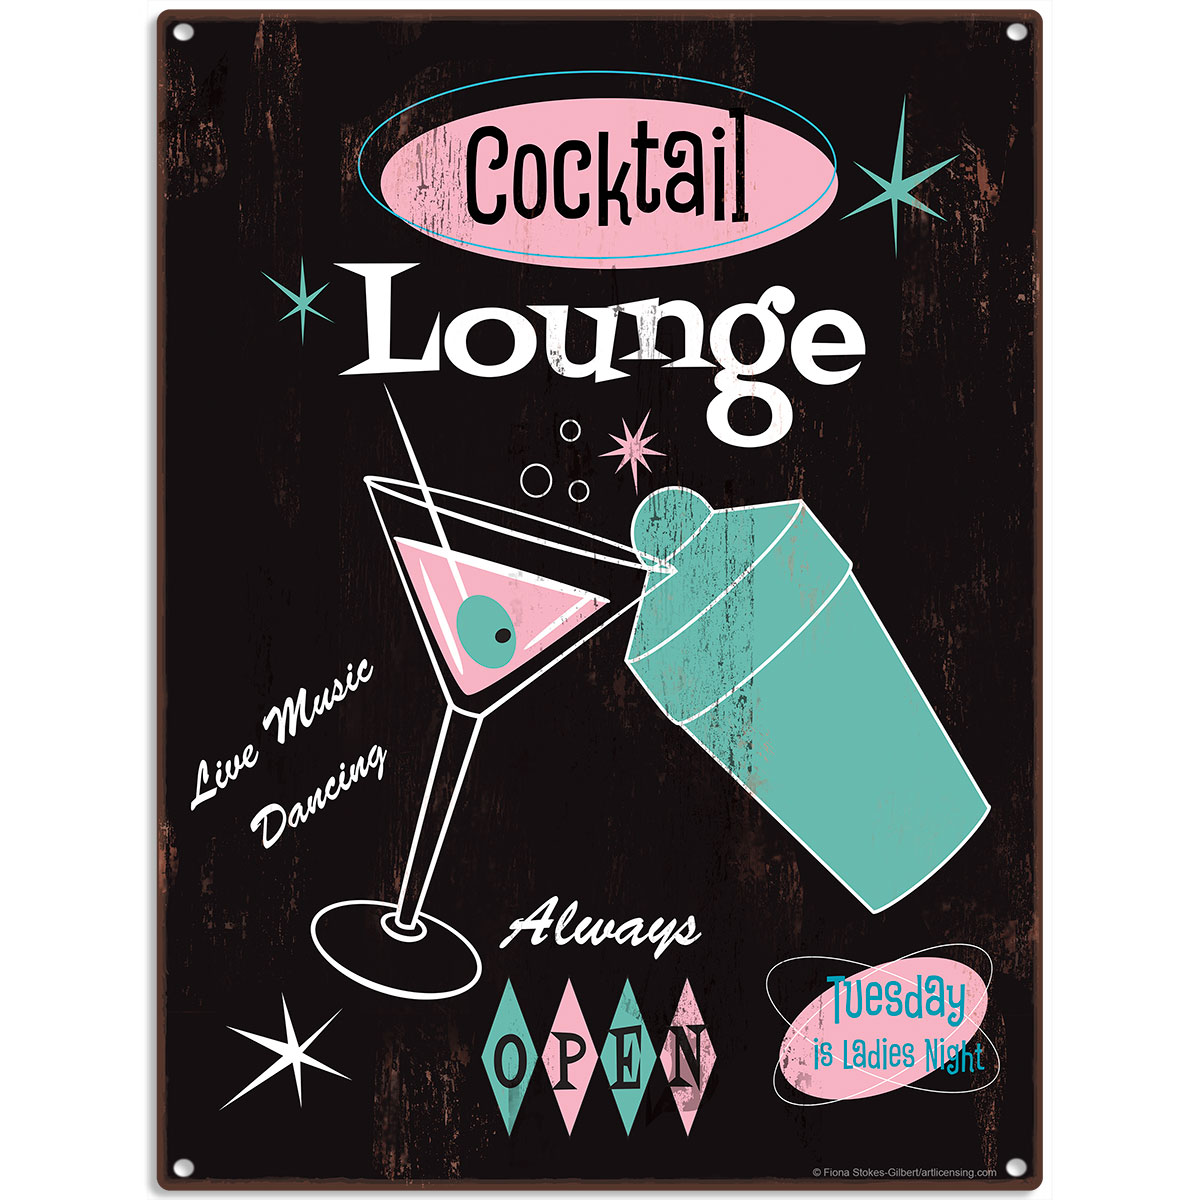 Cocktail Lounge 50s Style Populuxe Metal Sign Bar Man Cave